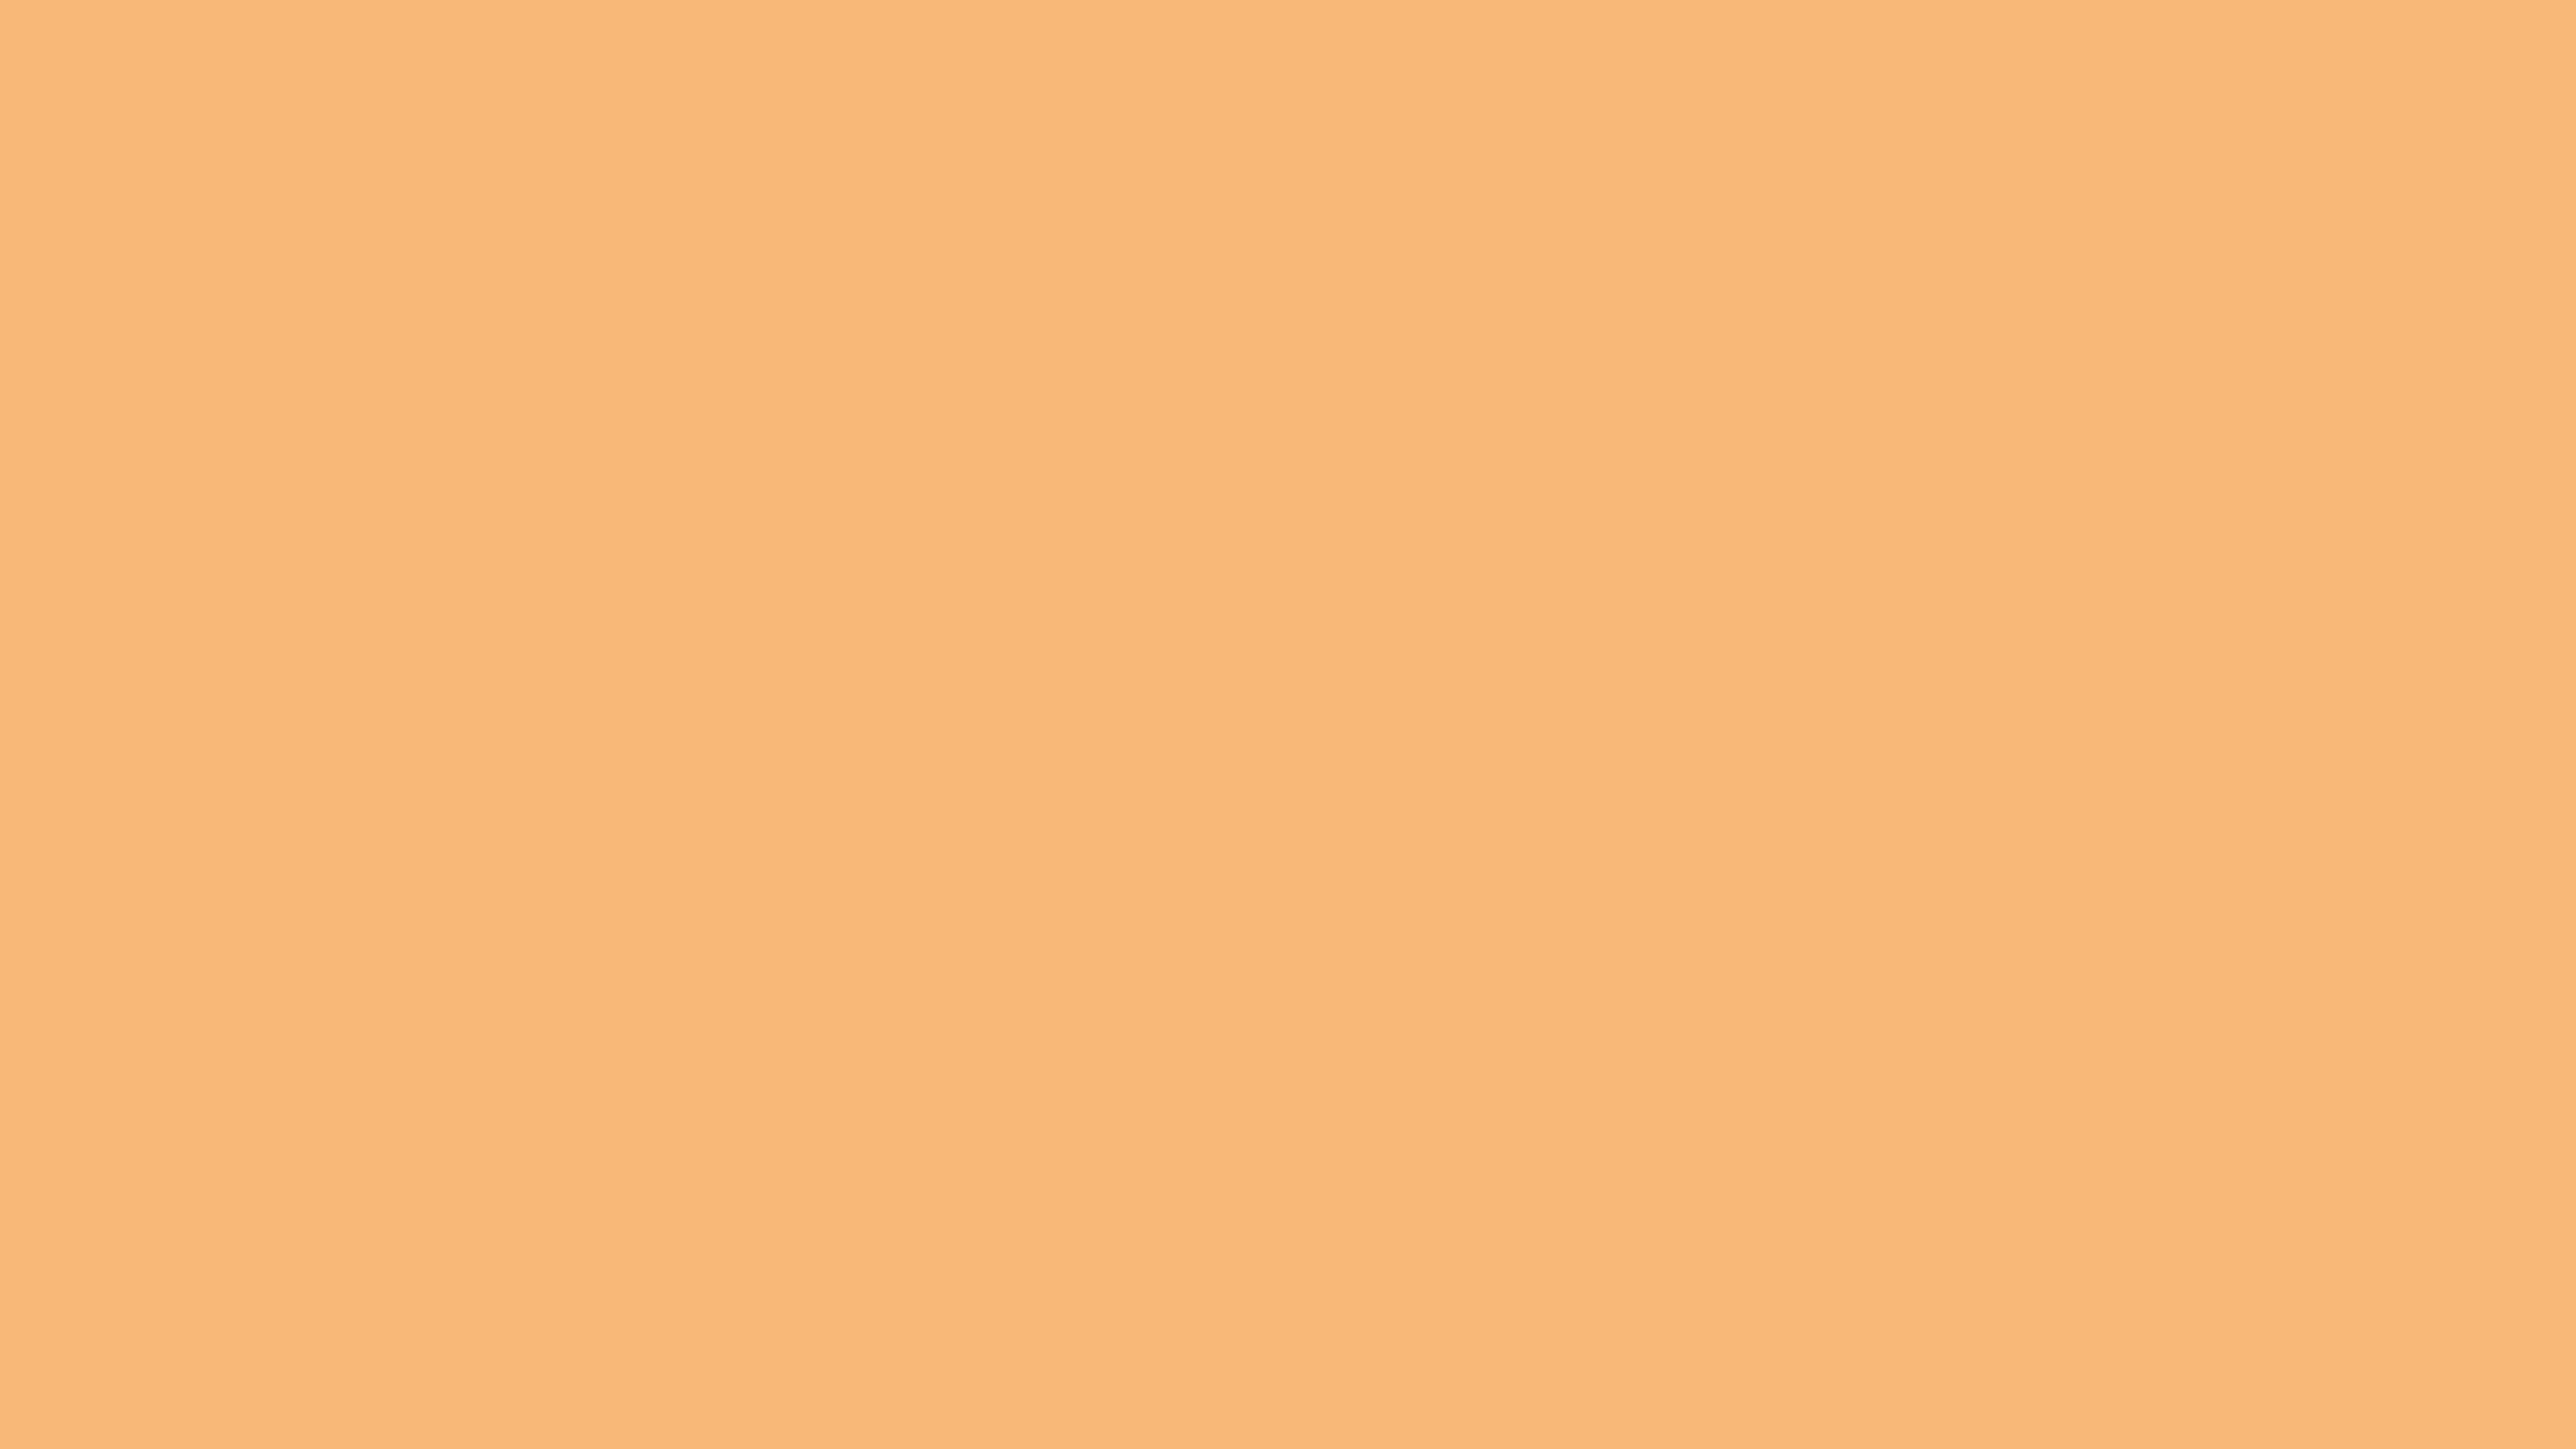 5120x2880 Mellow Apricot Solid Color Background